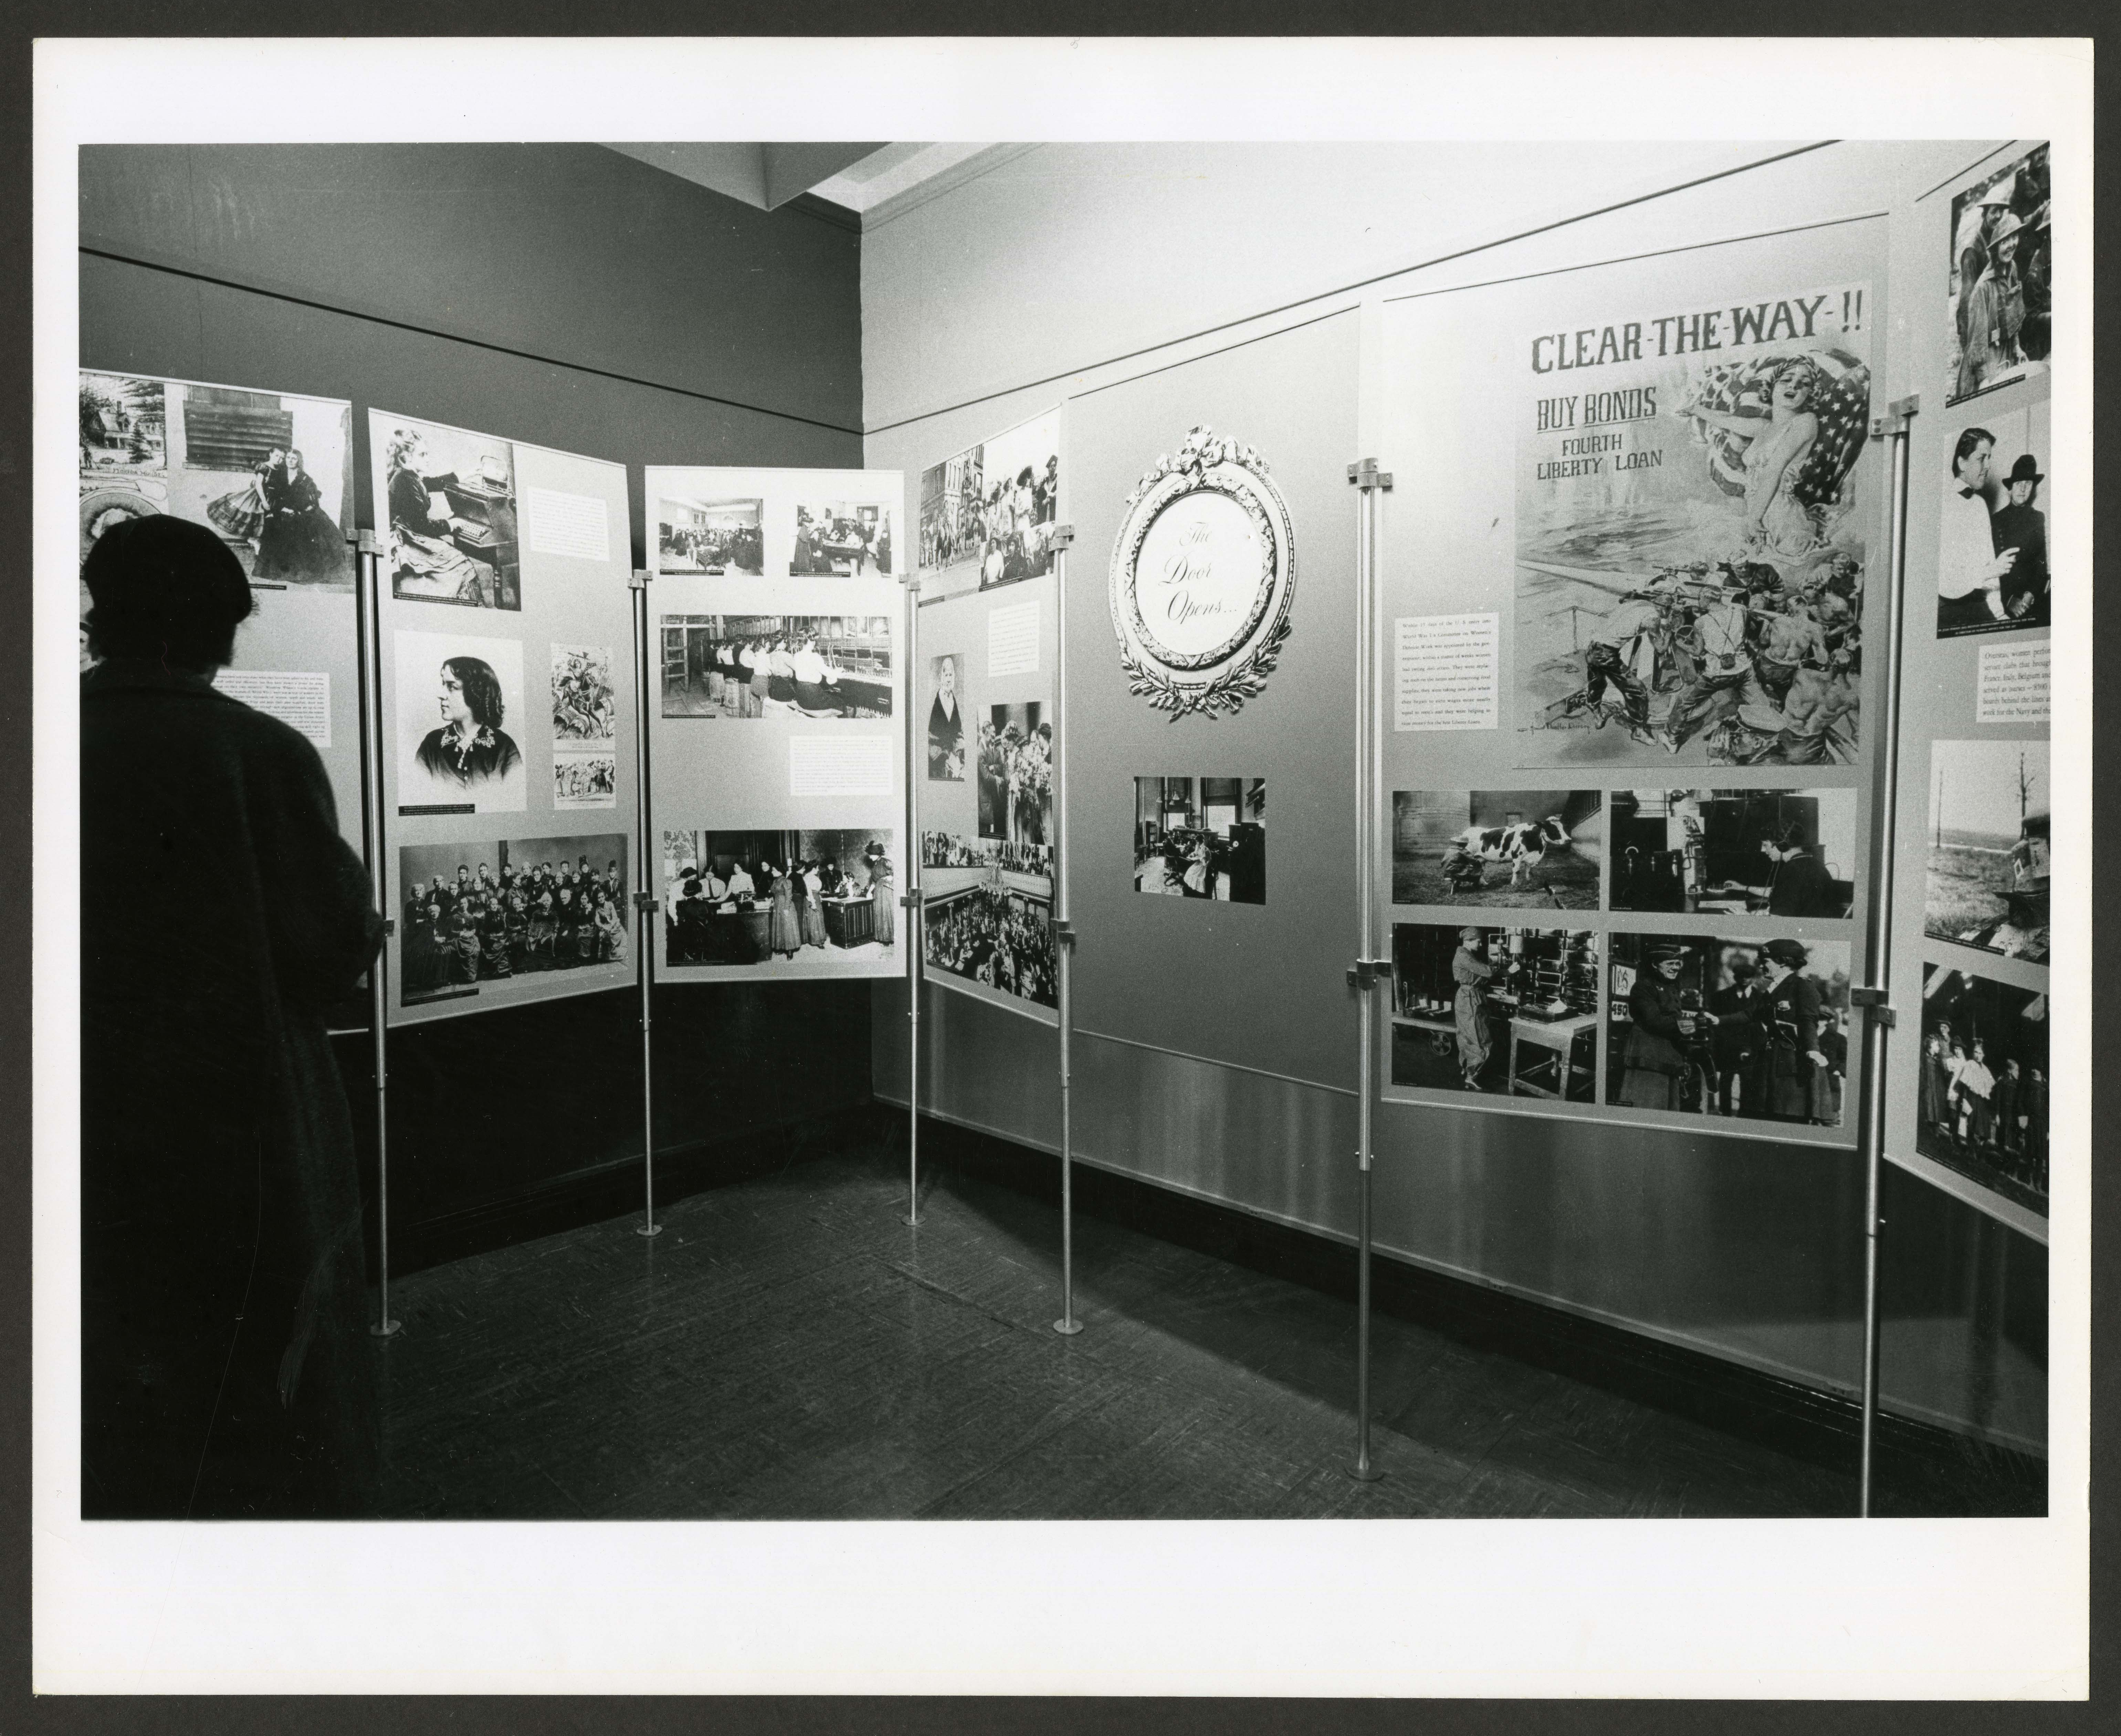 B & W image of seven museum panels, one panel states in bold letters Clear the Way.